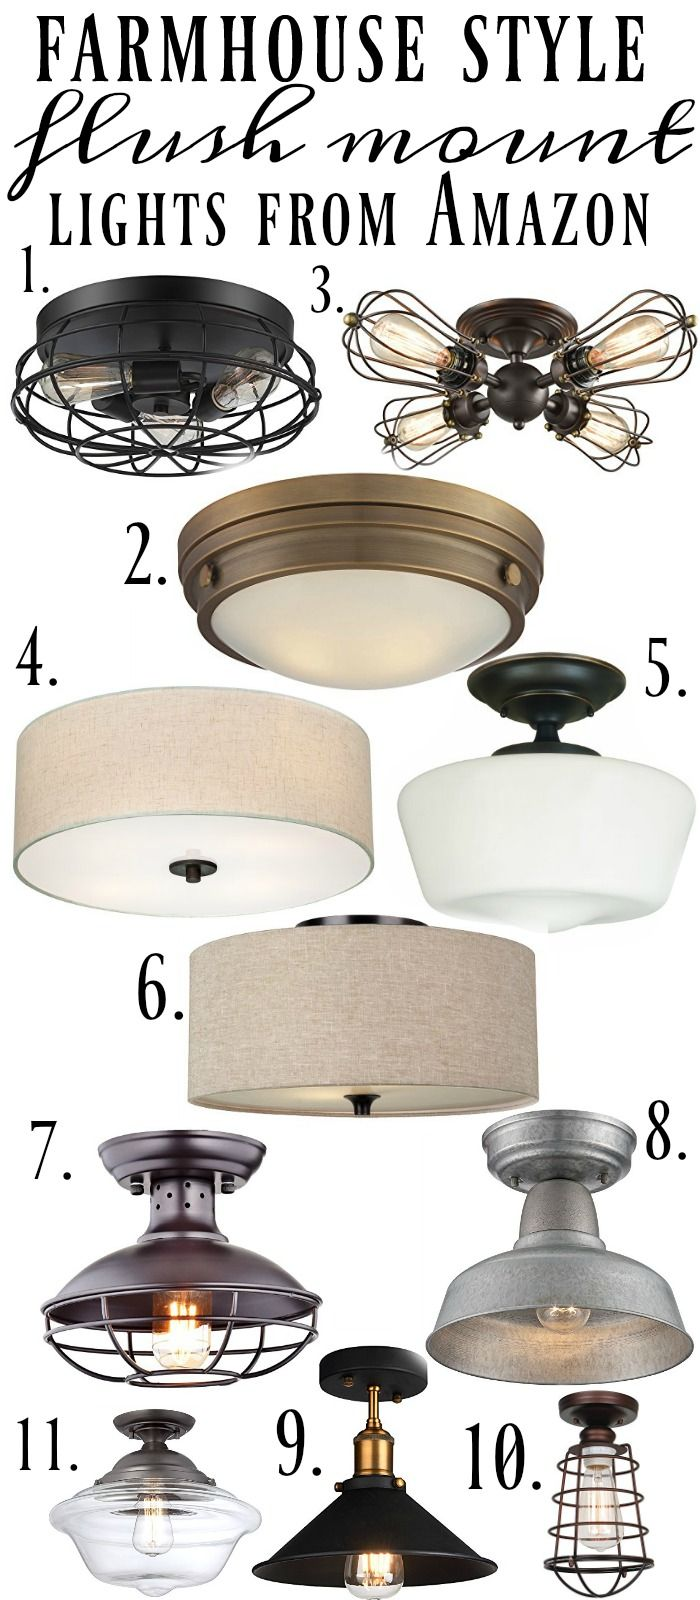 The best Farmhouse Flush Mount Lights all from Amazon